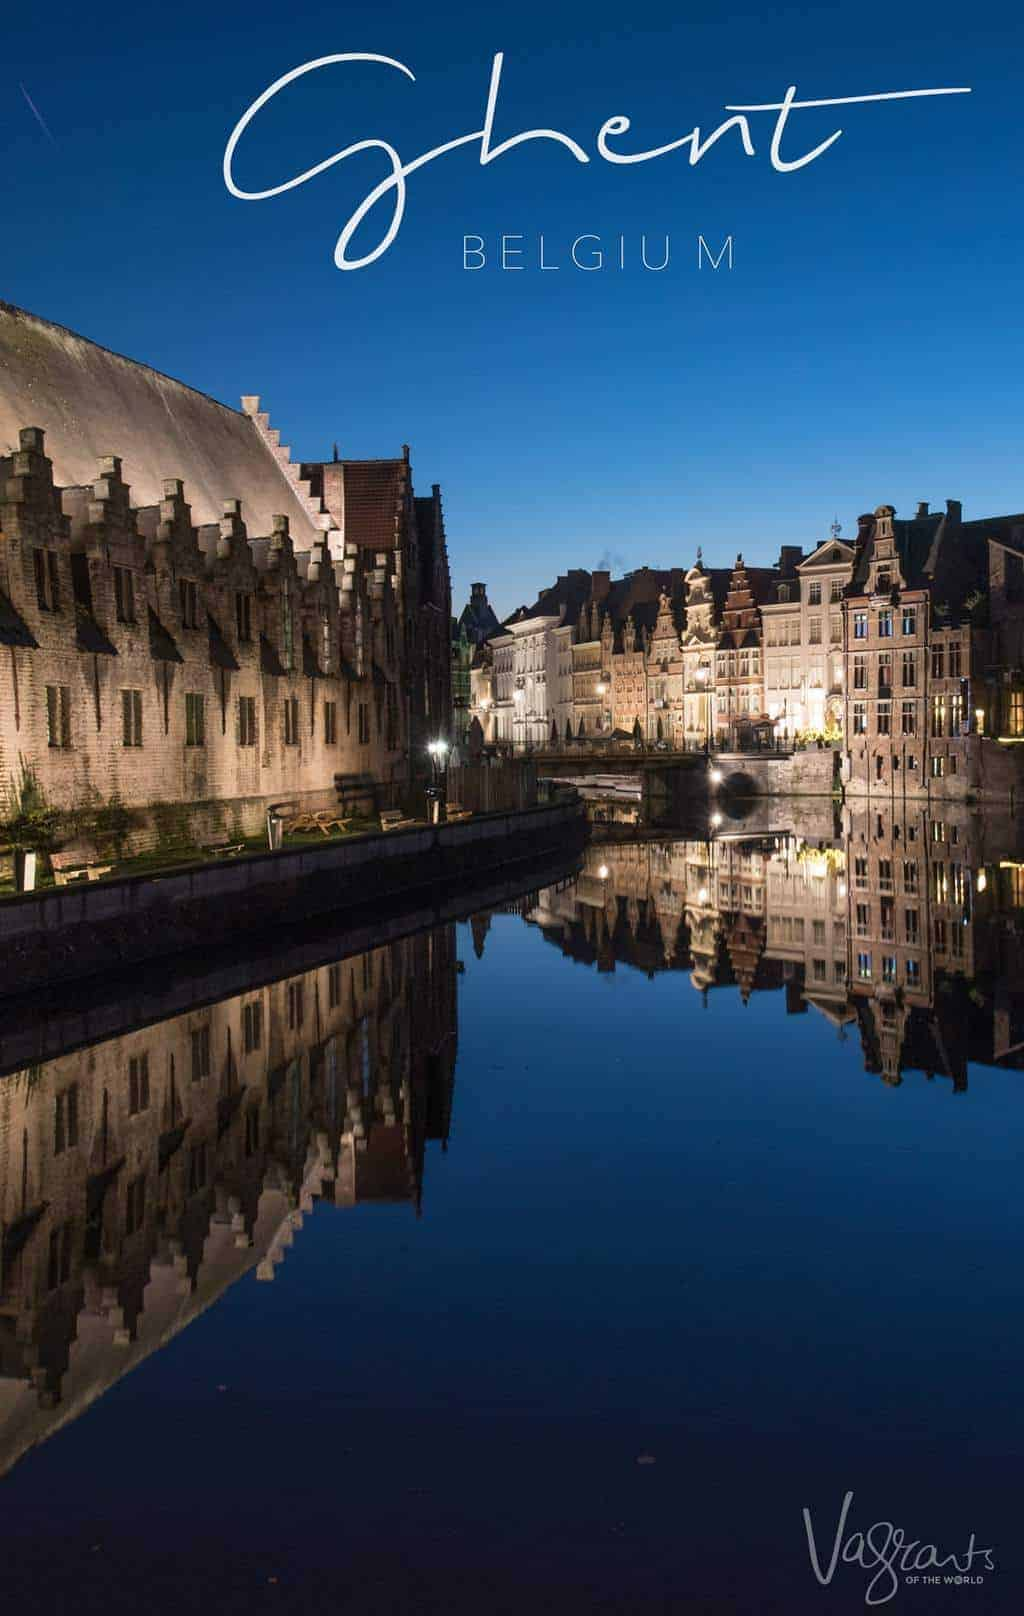 One of the best things to do in Ghent is the Ghent Illuminated City Walk